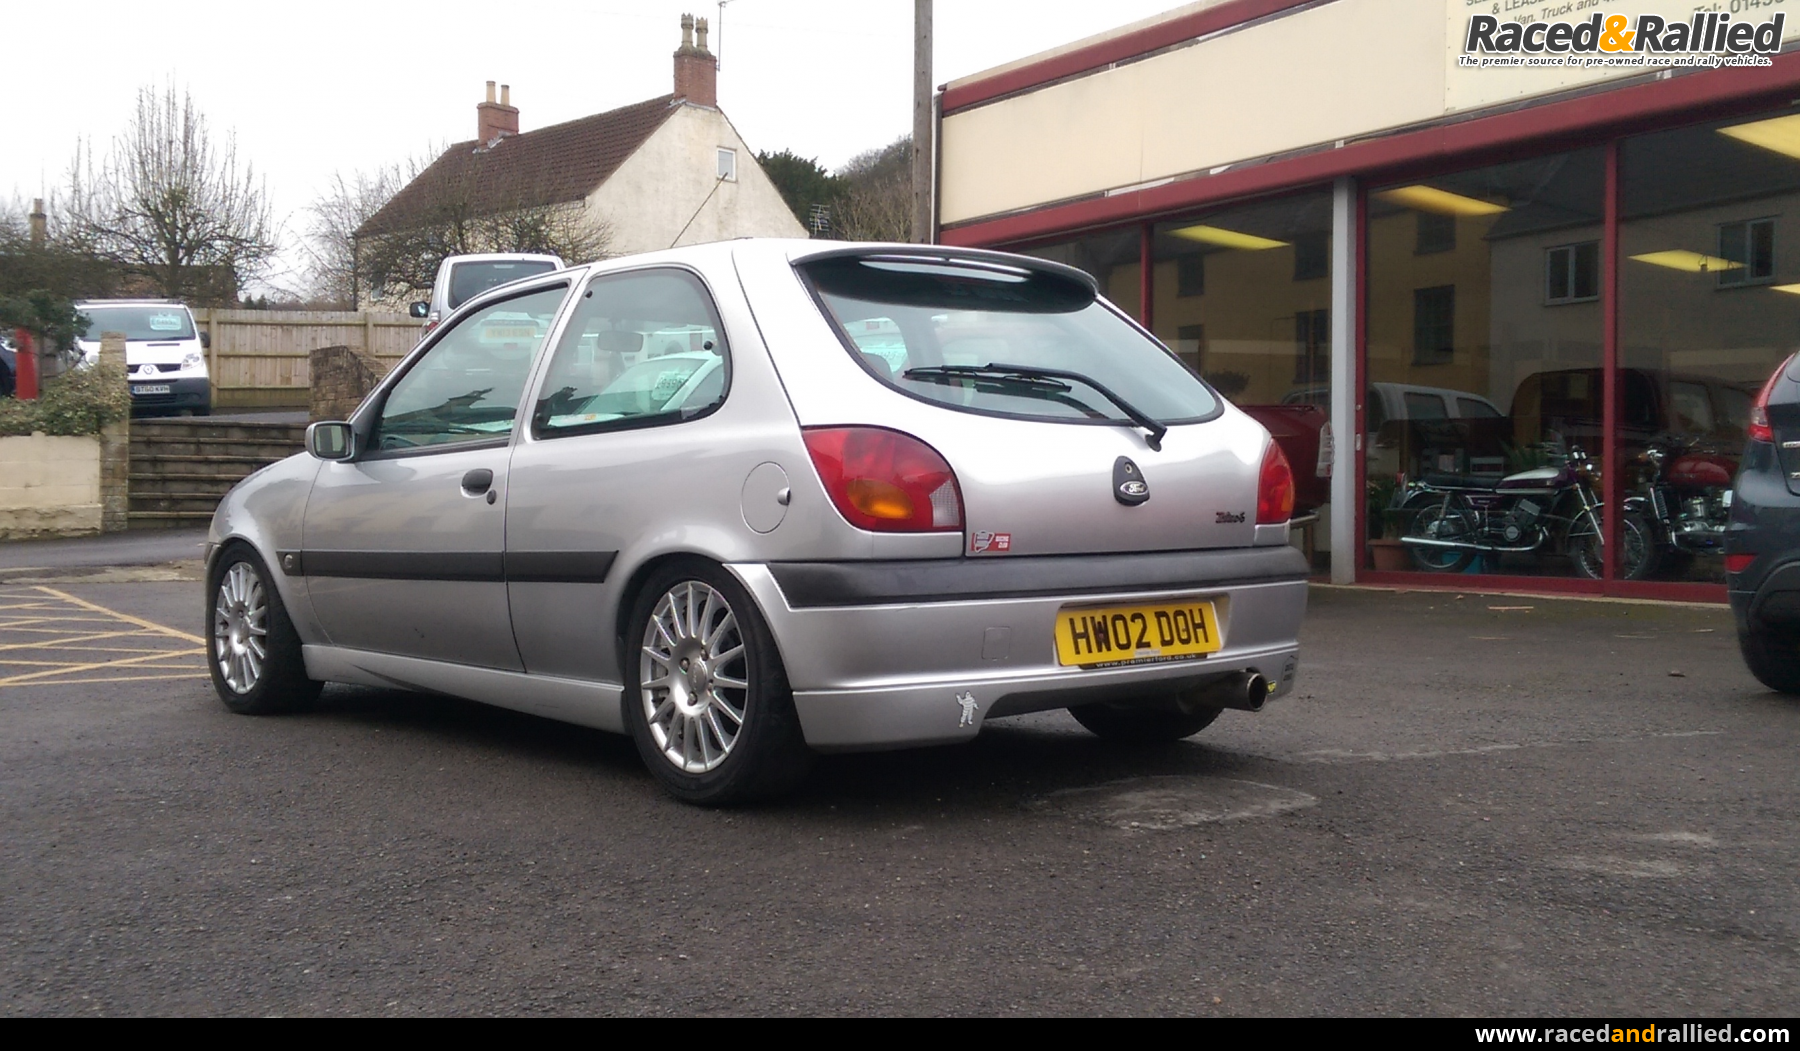 Race Car For Sale >> 2002 fiesta zetec S | Performance & Trackday Cars for sale at Raced & Rallied | rally cars for ...